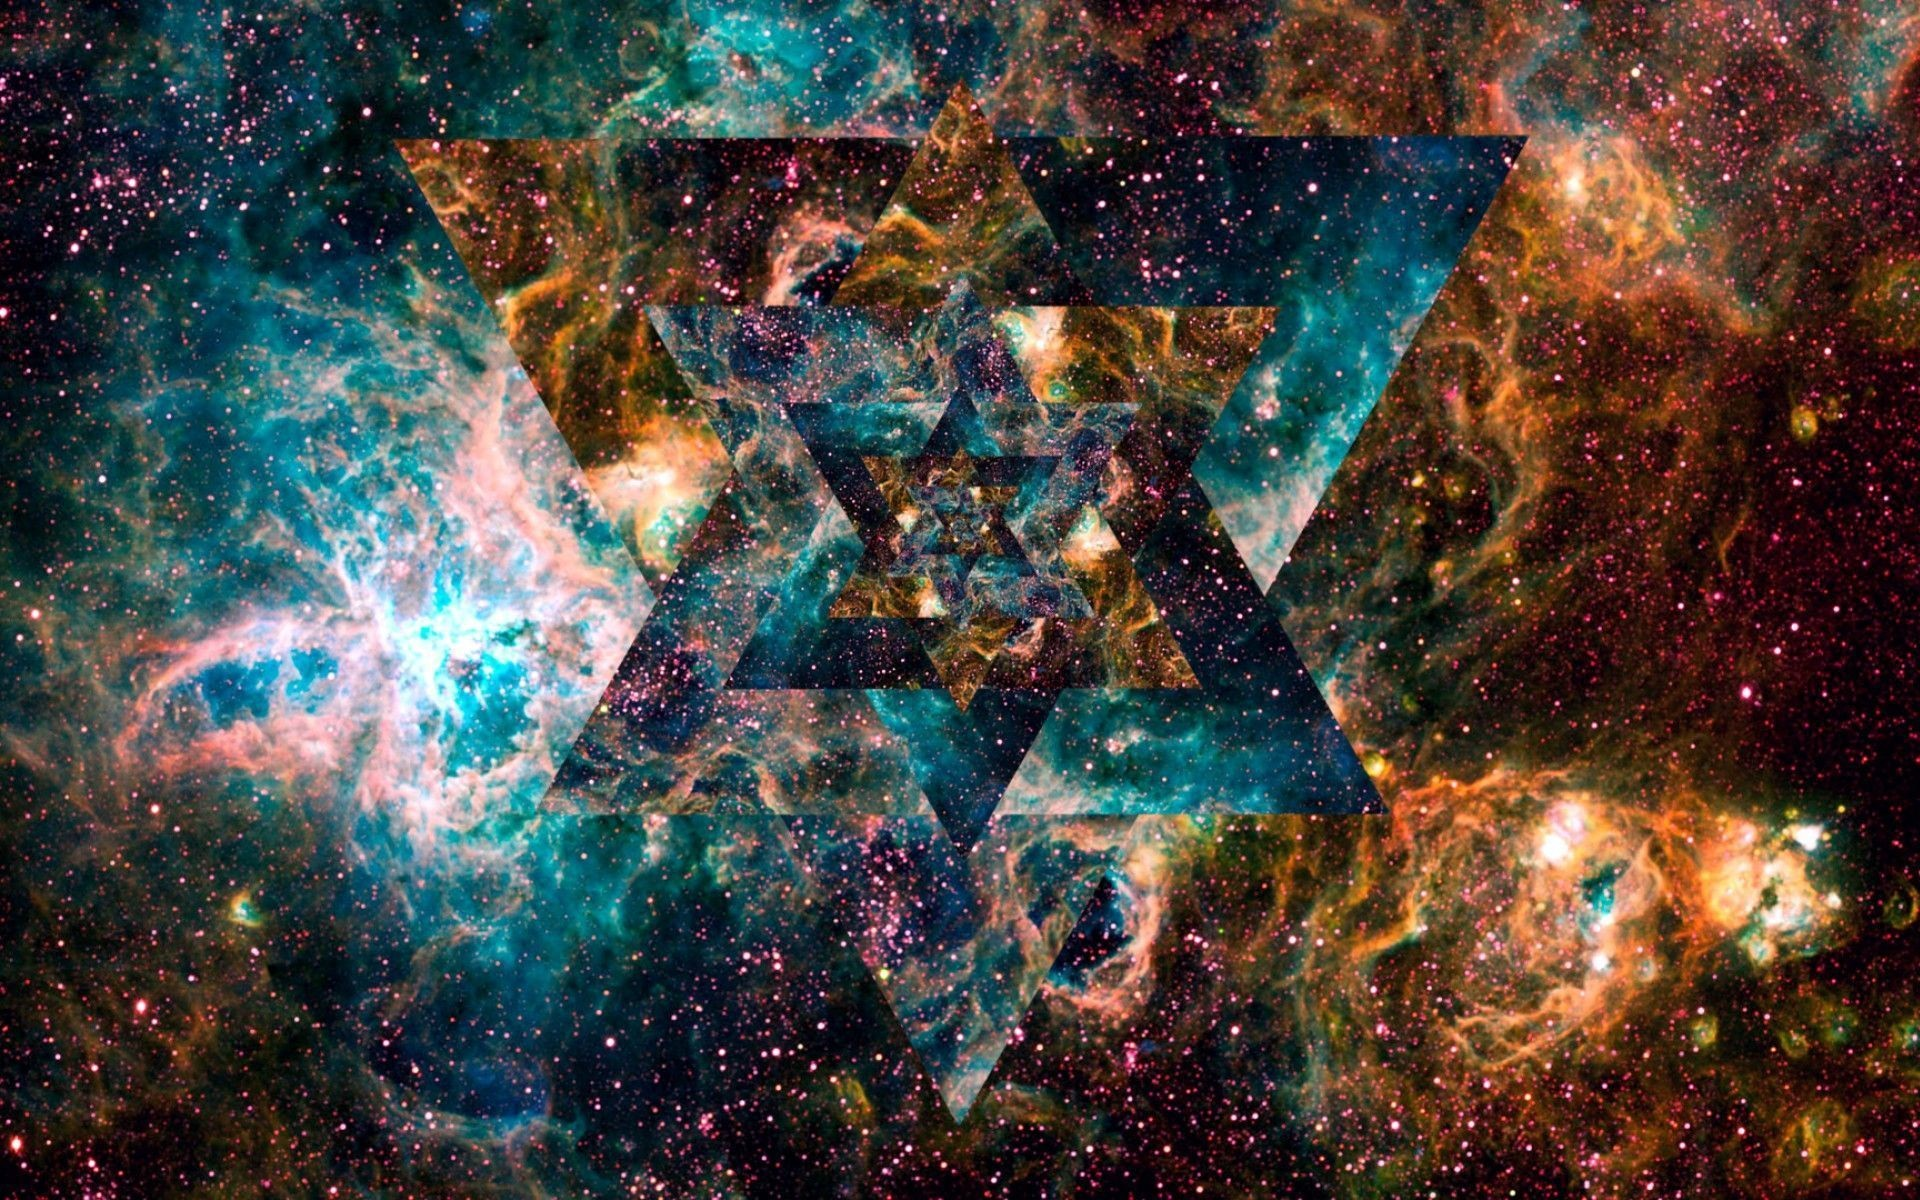 1920x1200 Space Wallpaper Space Wallpaper 1920×1200 Trippy Space Wallpapers (47 Wallpapers) |